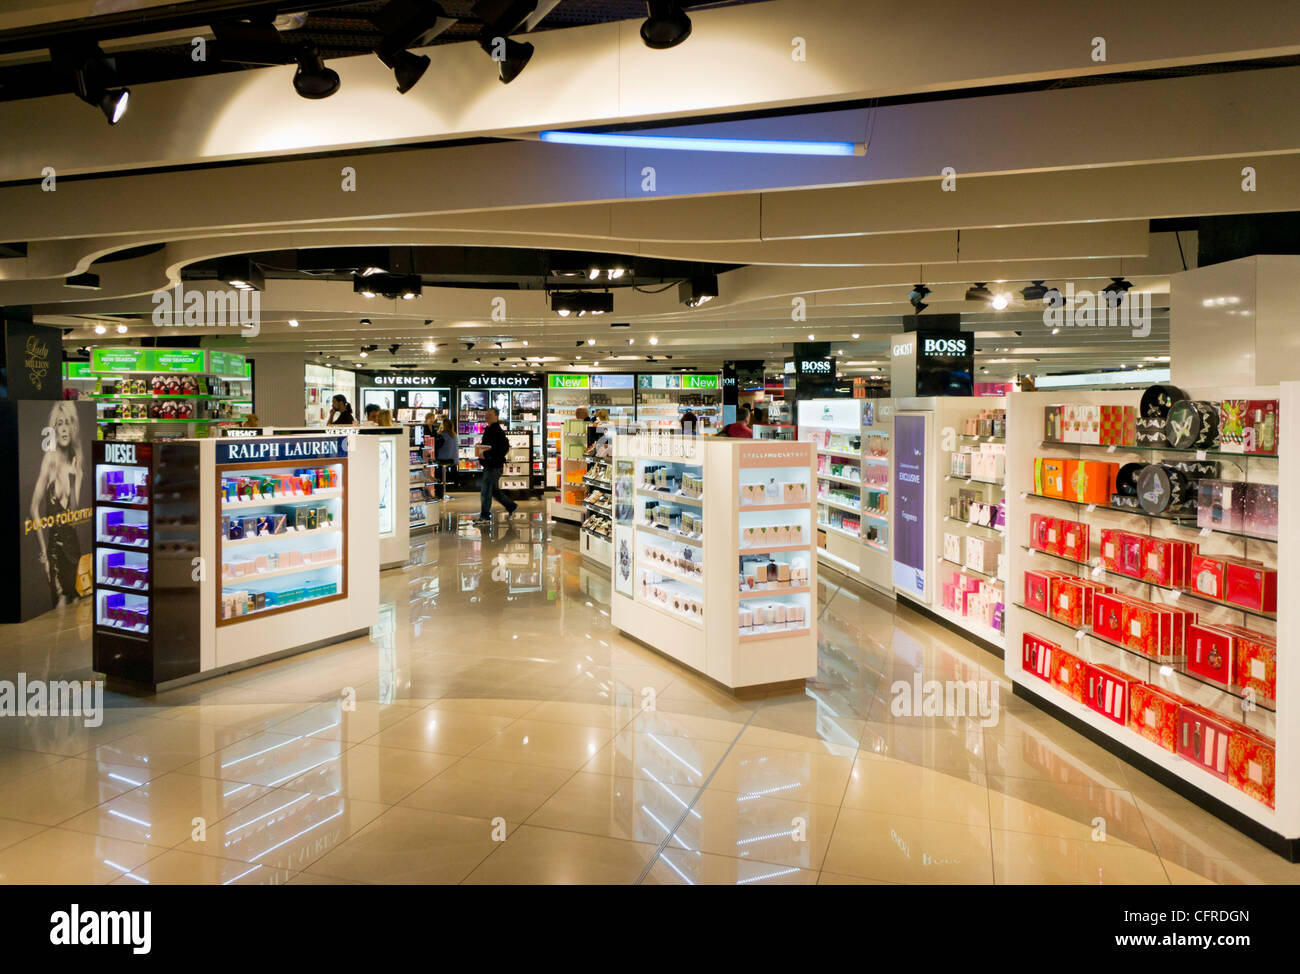 Duty free perfumes shops at the departures lounge Manchester International Airport  England UK GB EU Europe - Stock Image